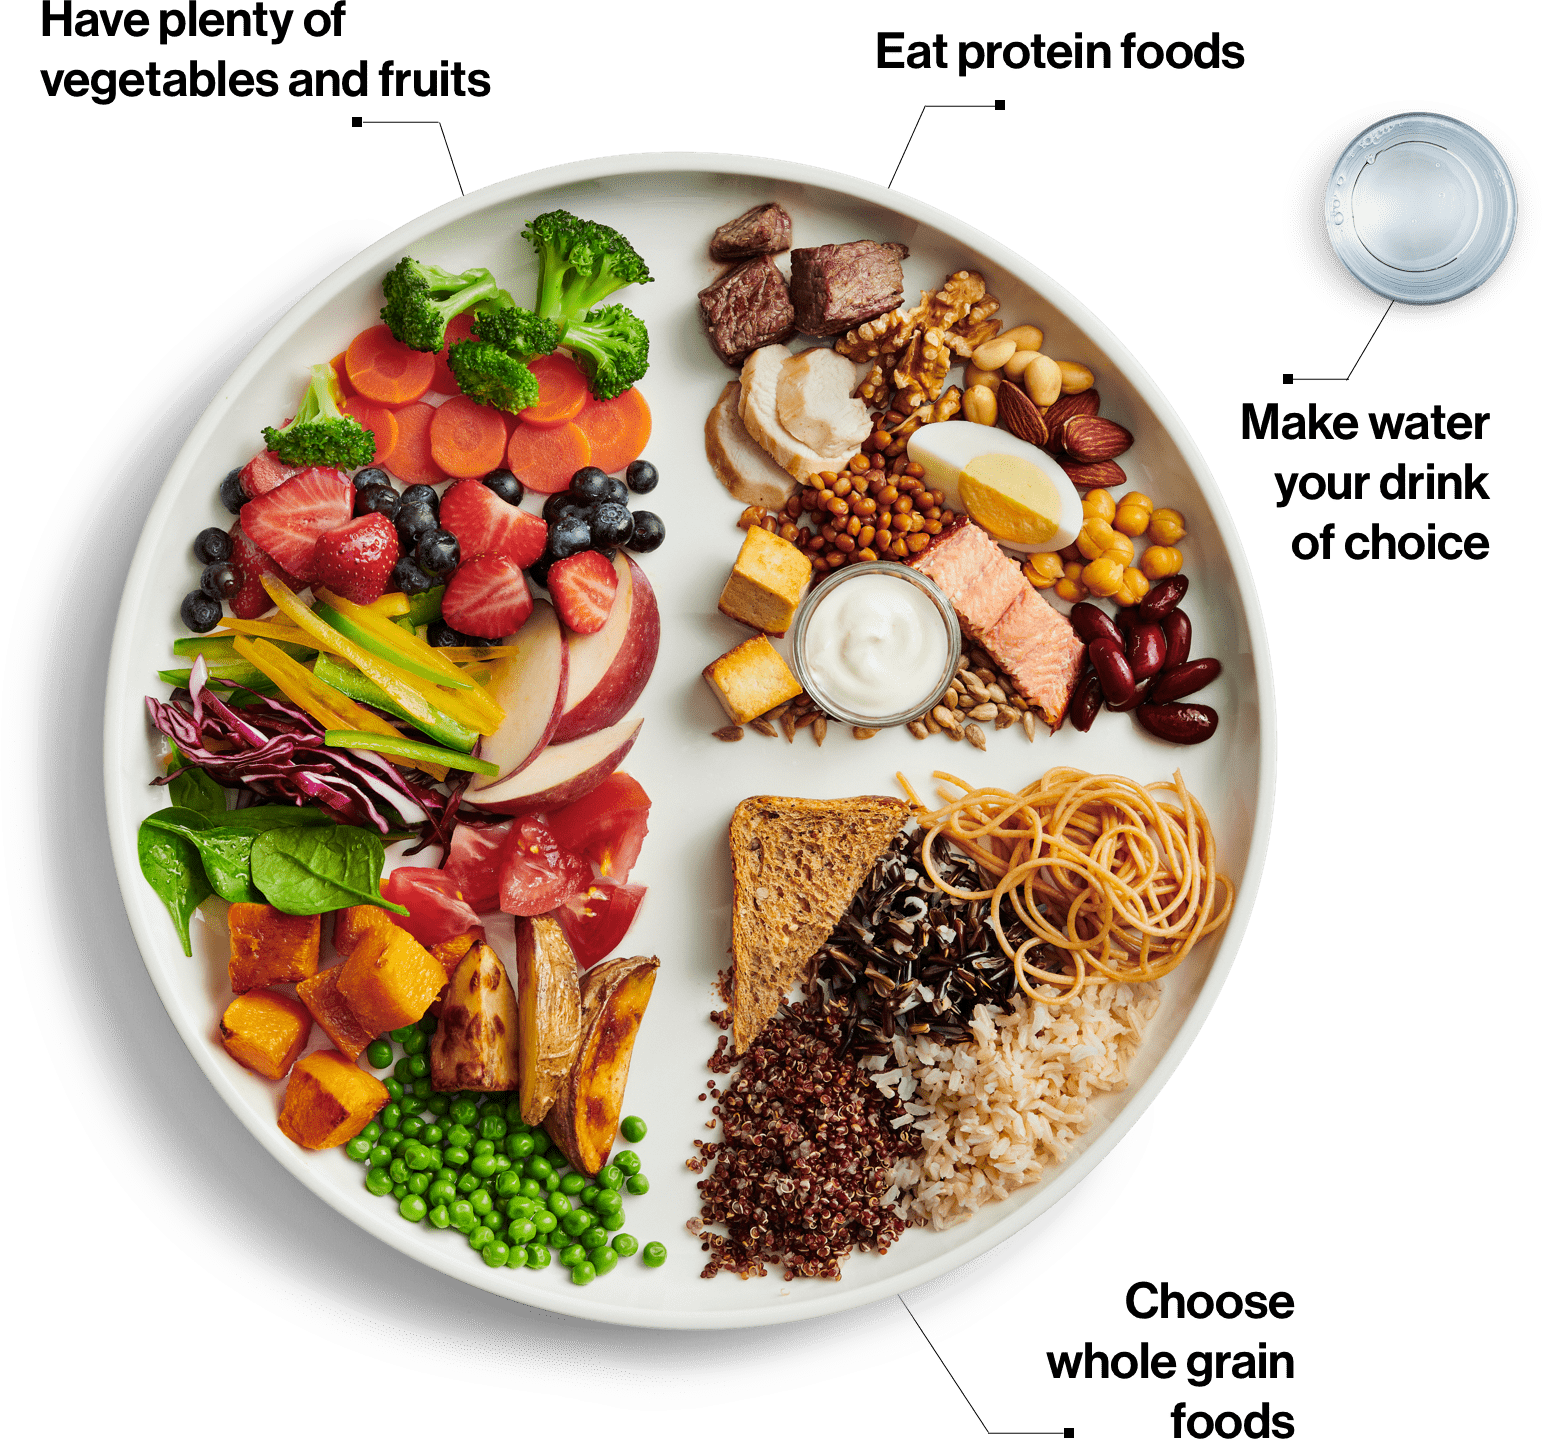 Canada's Food Guide. A plate showing 1/2 vegetables and fruit, 1/4 protein foods, 1/4 whole grains, and water to drink